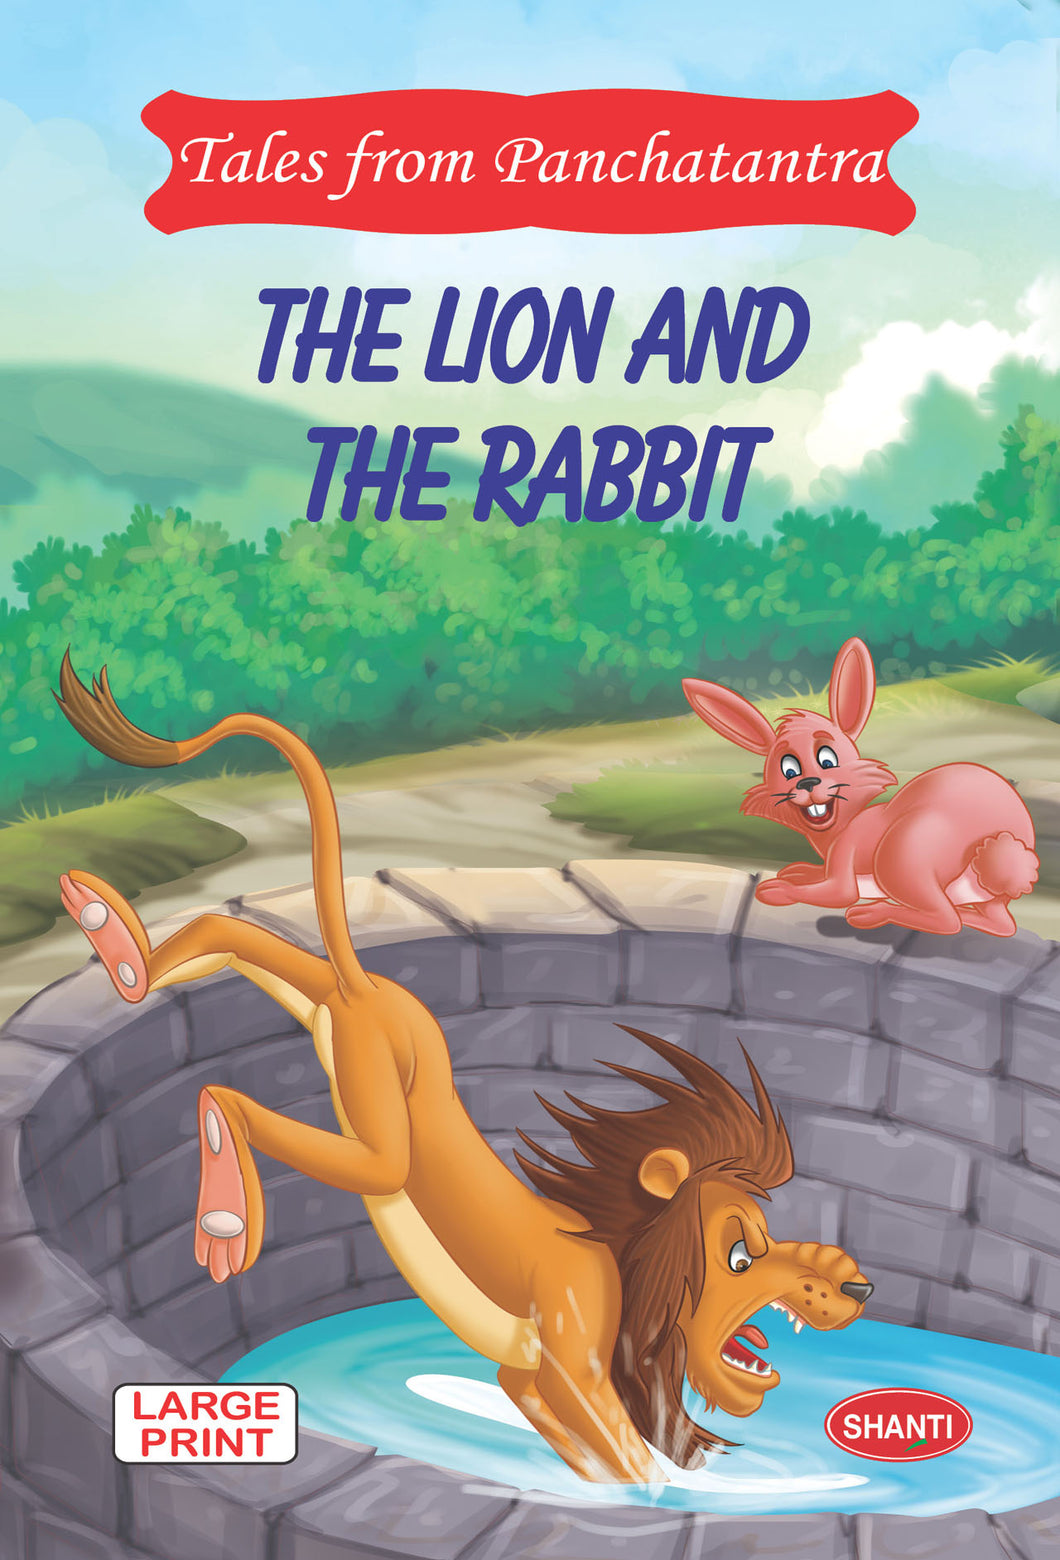 Panchatantra story books-Tales from Panchatantra - The Lion and The Rabbit (English)